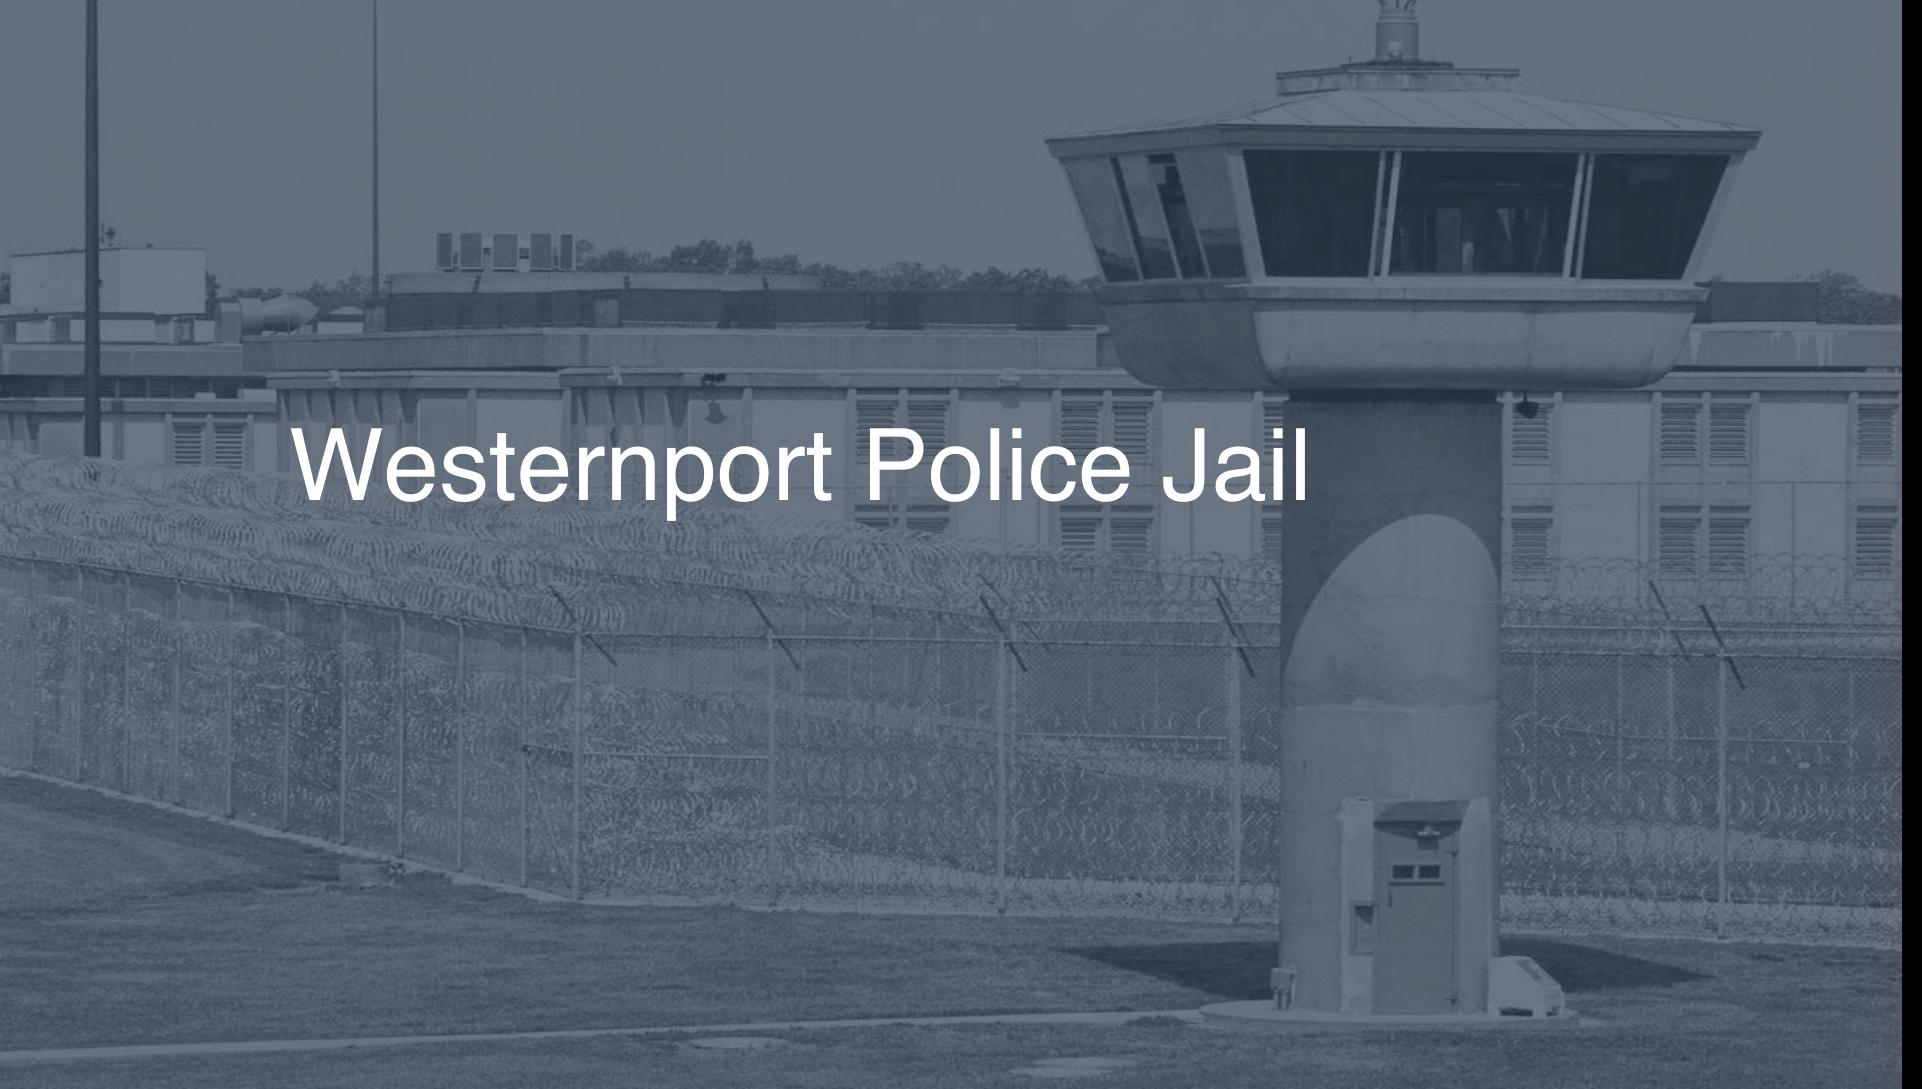 Westernport Police Jail correctional facility picture